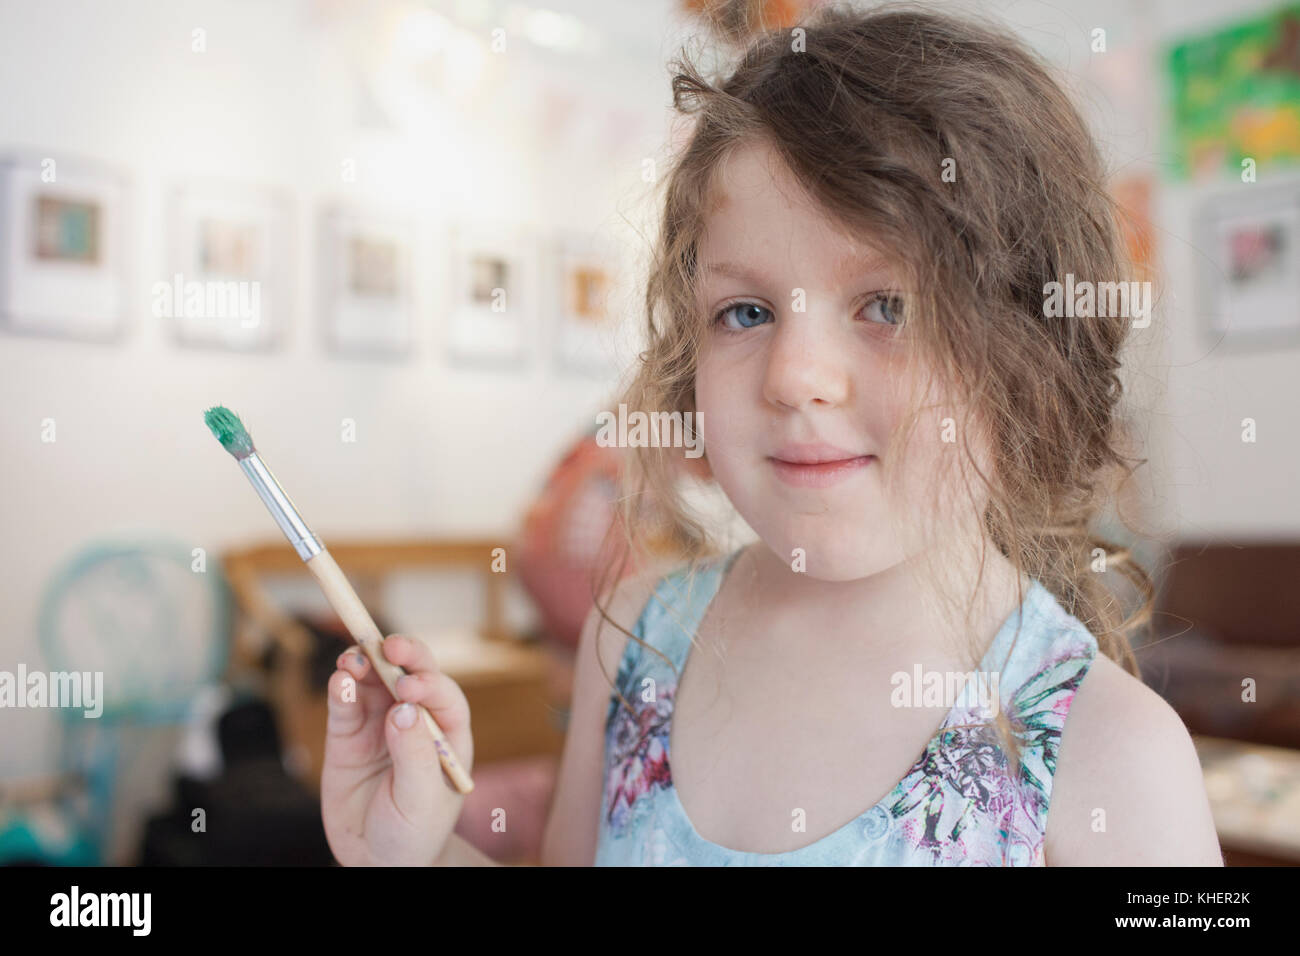 A girl holding a paintbrush Photo Stock